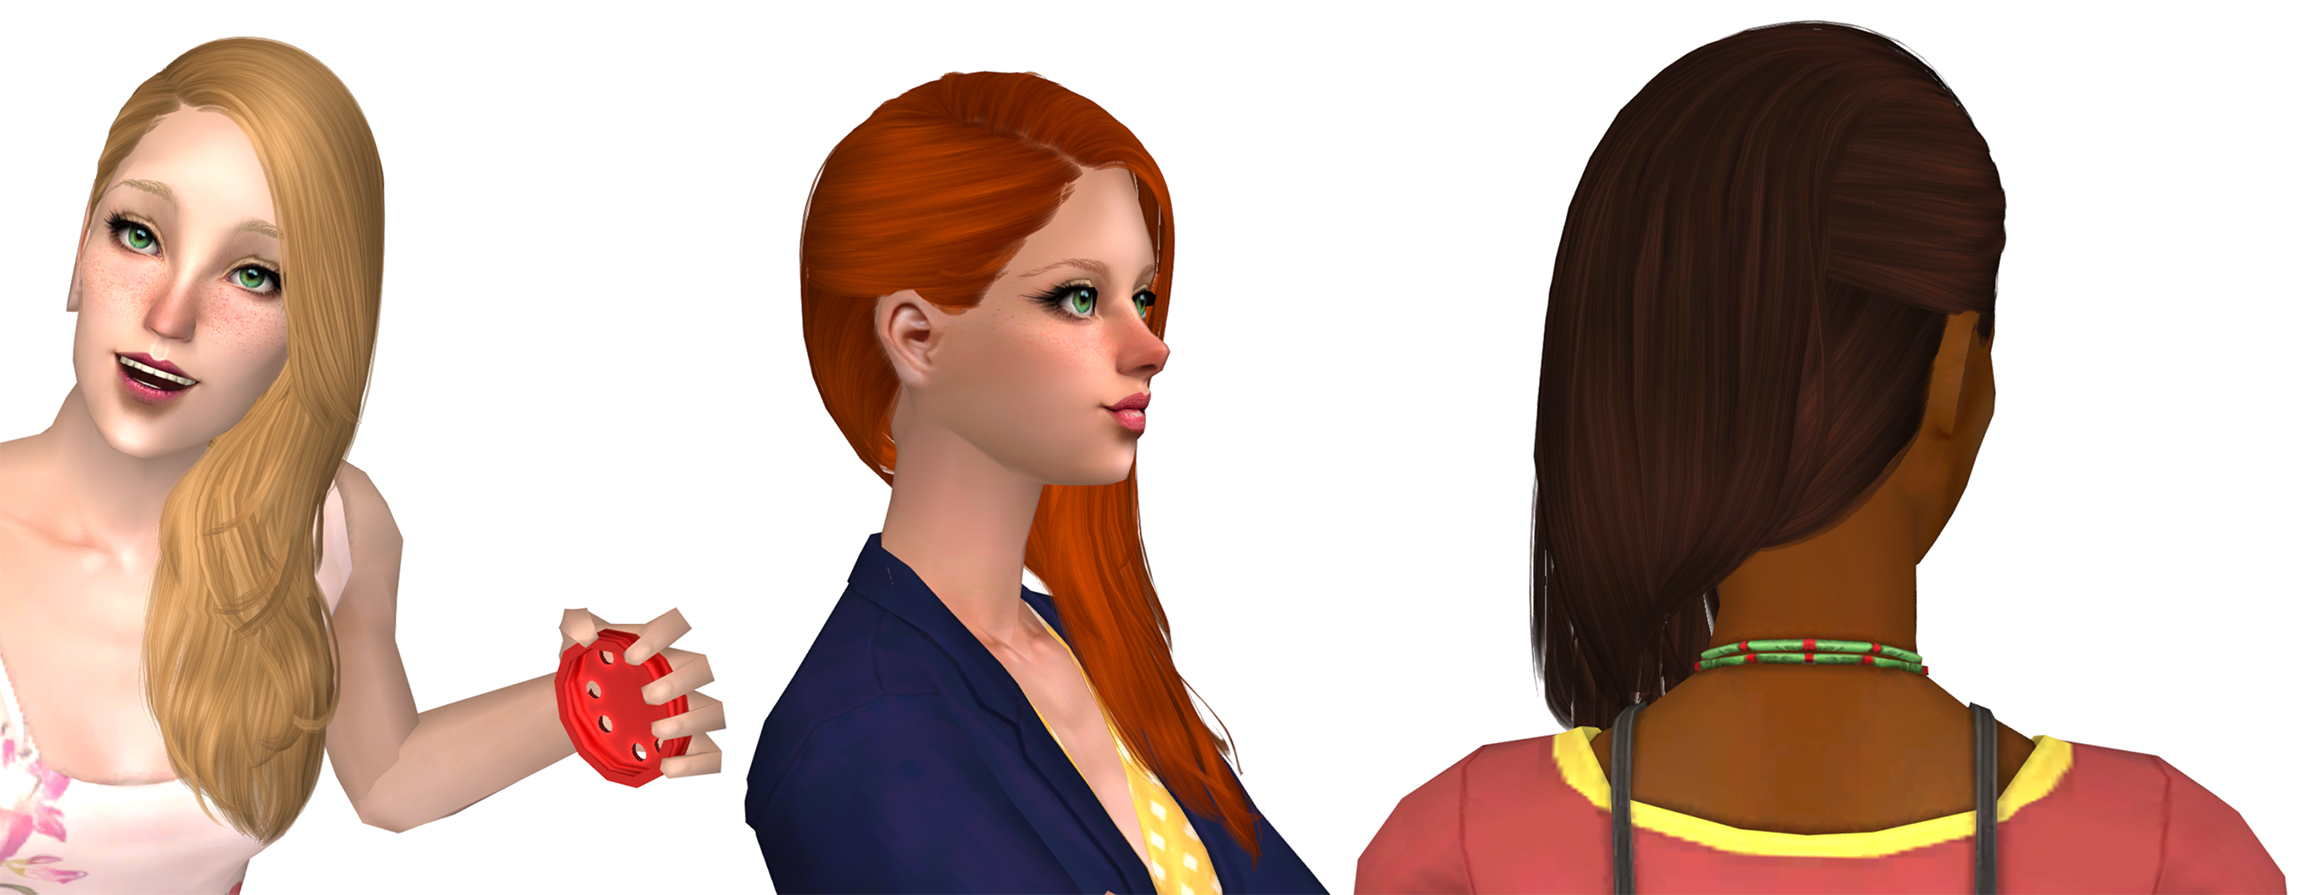 Sims 2 matchmaking service